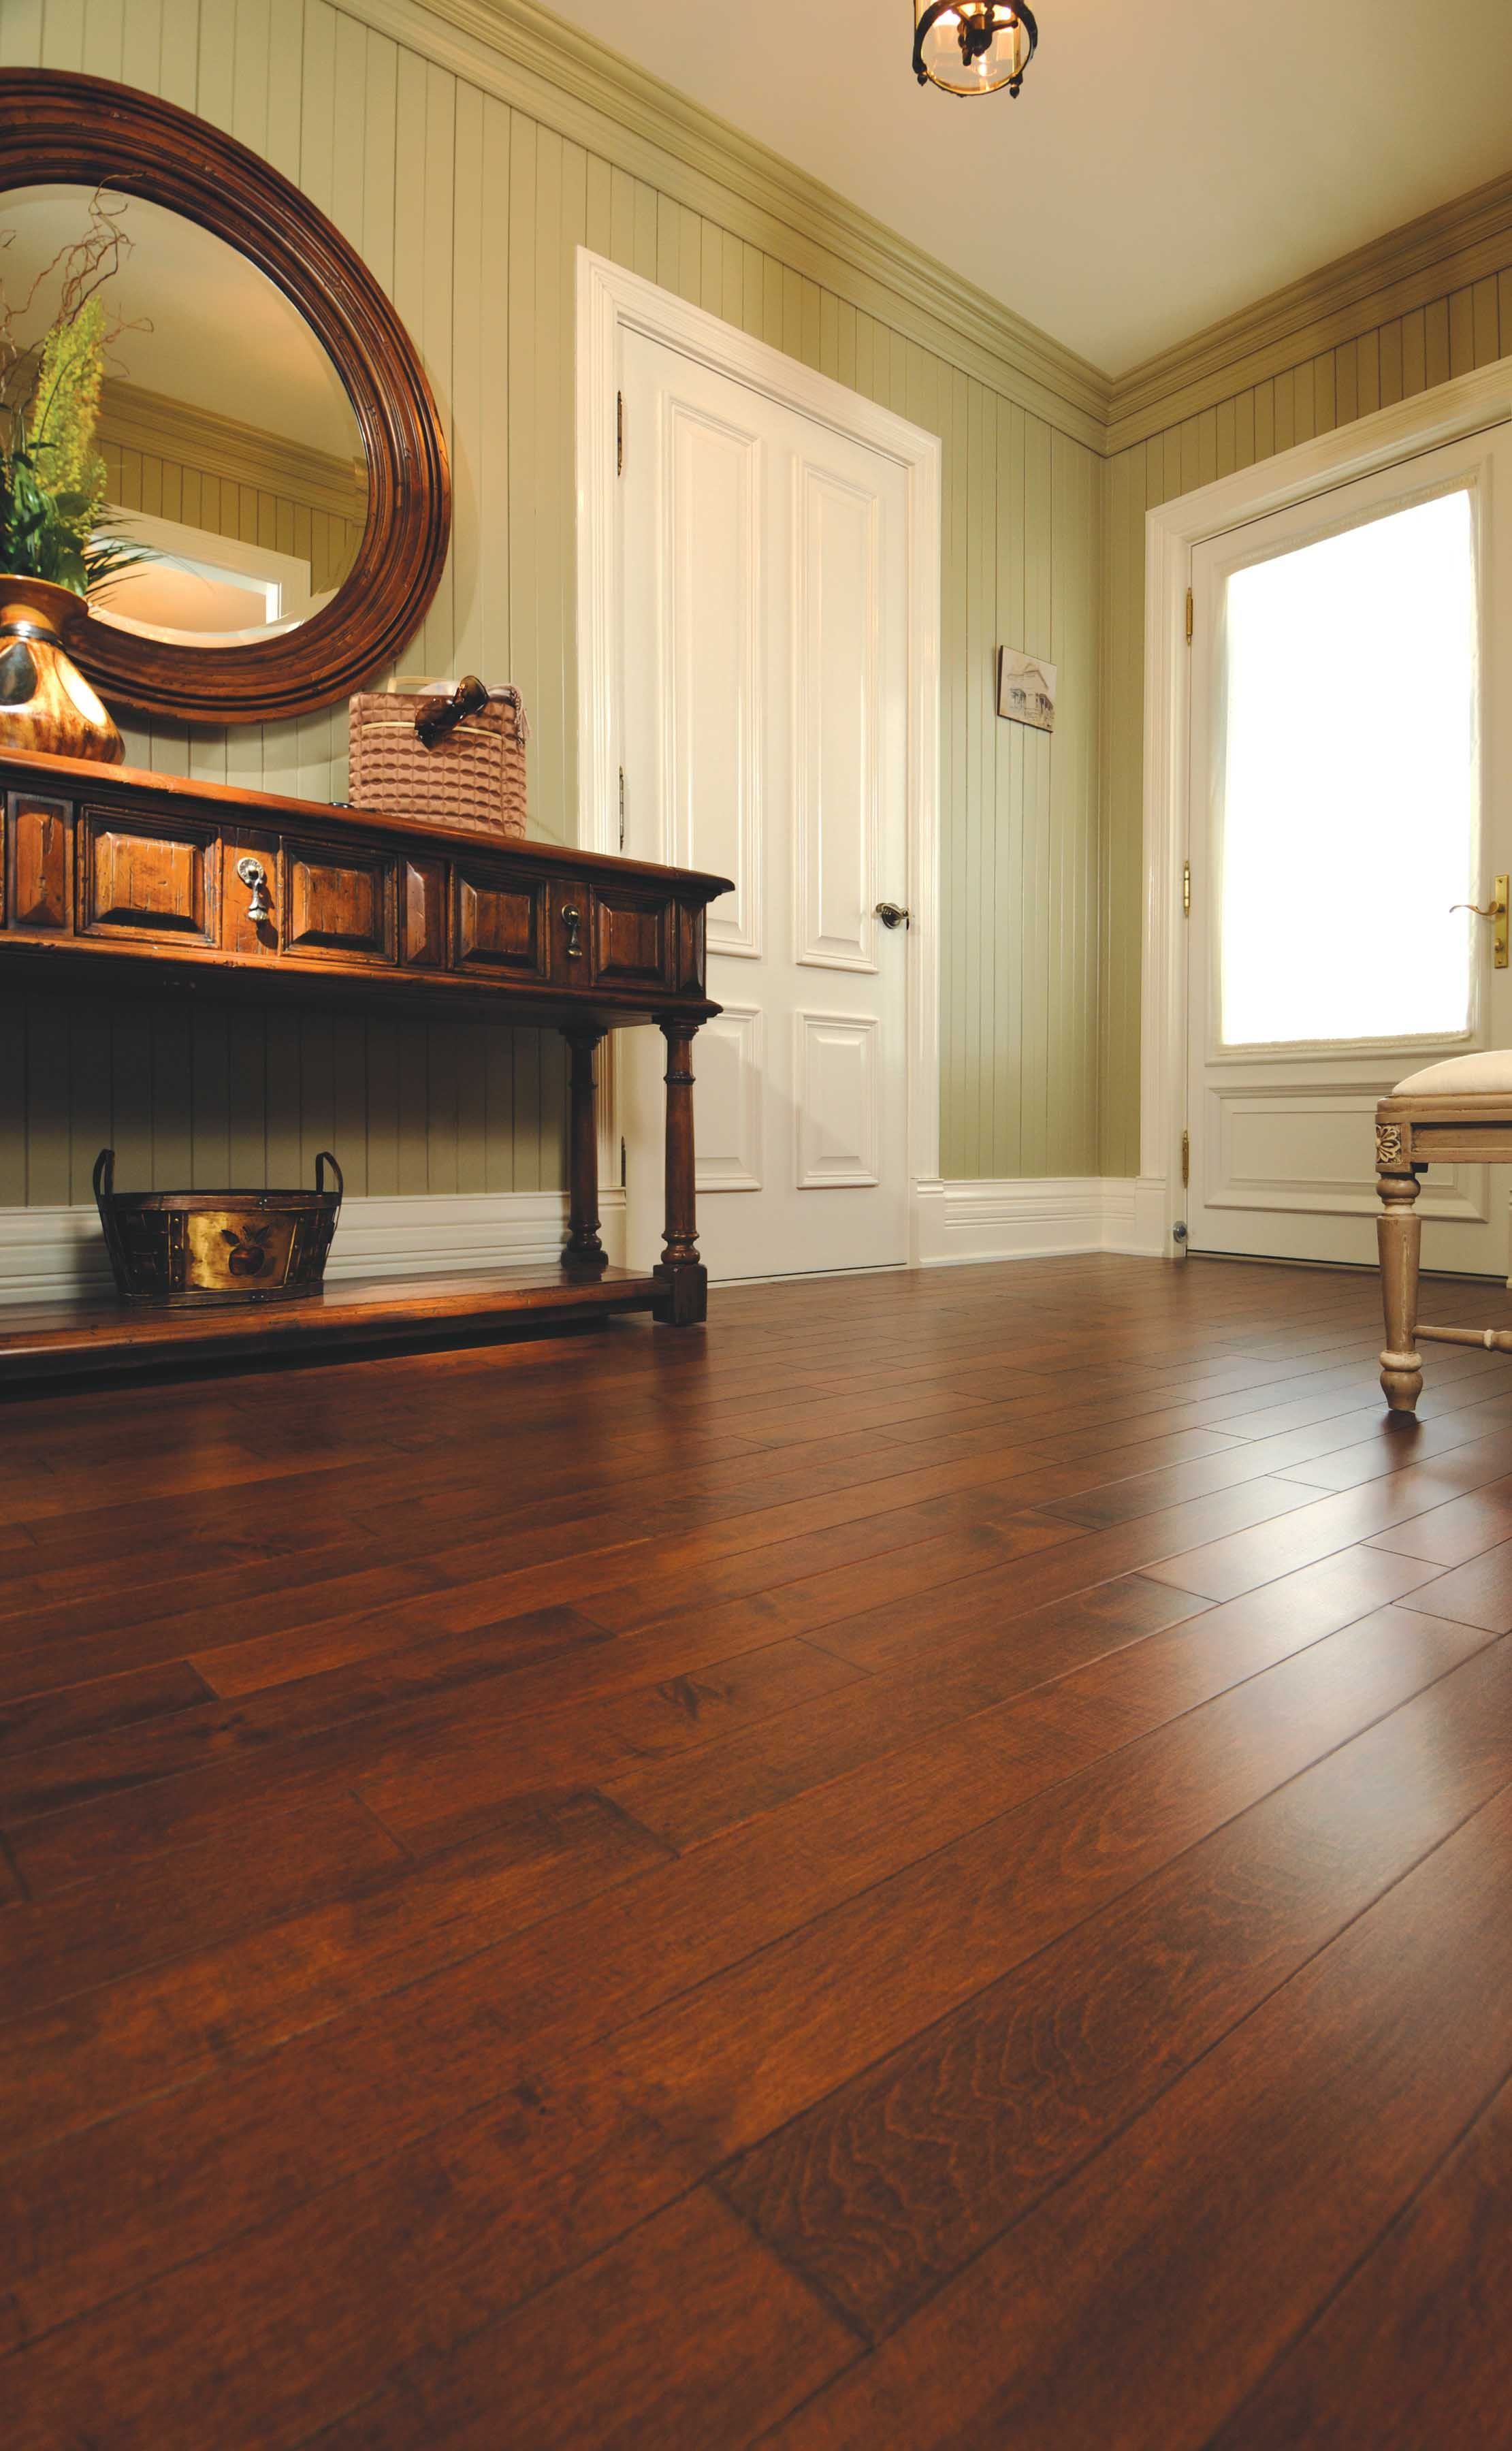 Mirage floors the worlds finest and best hardwood floors www miragefloors com mirage hardwood floor sweet memories aged maple truffle hallway